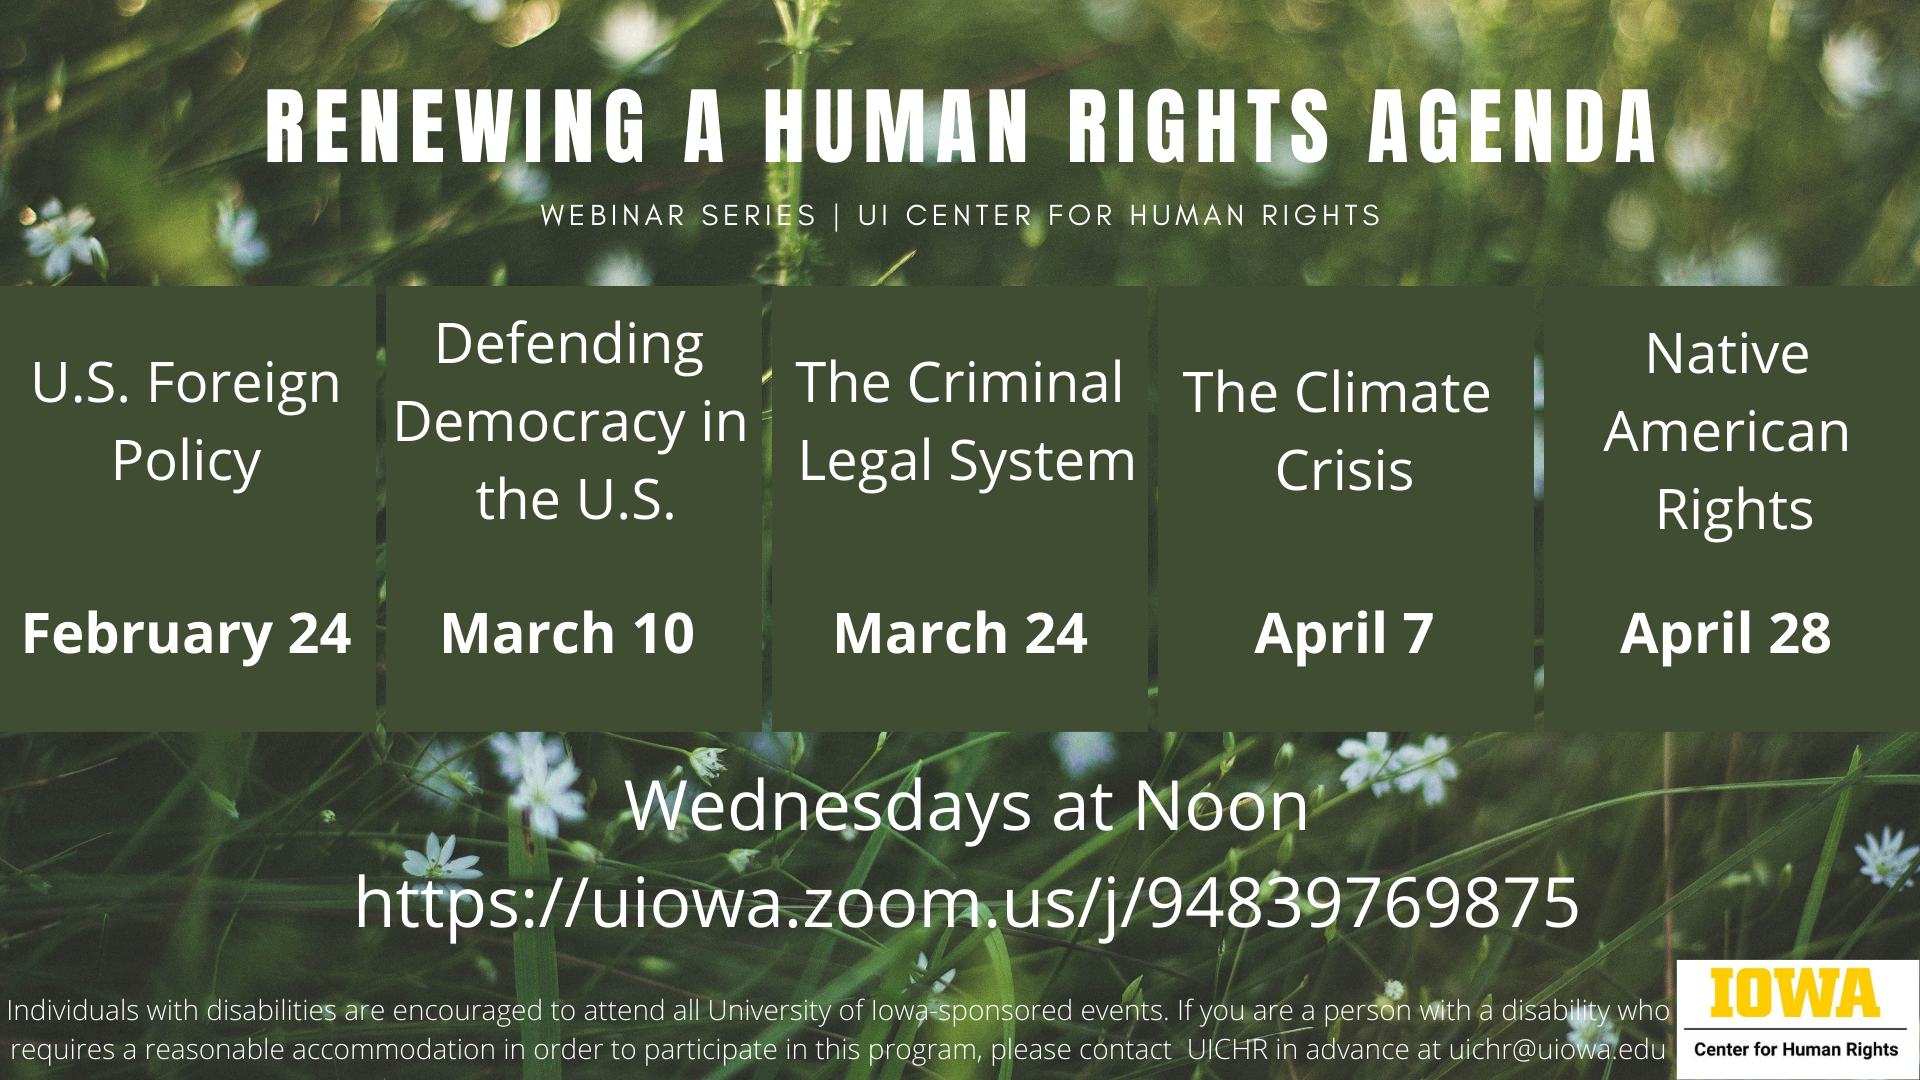 Renewing a Human Rights Agenda: The Climate Crisis